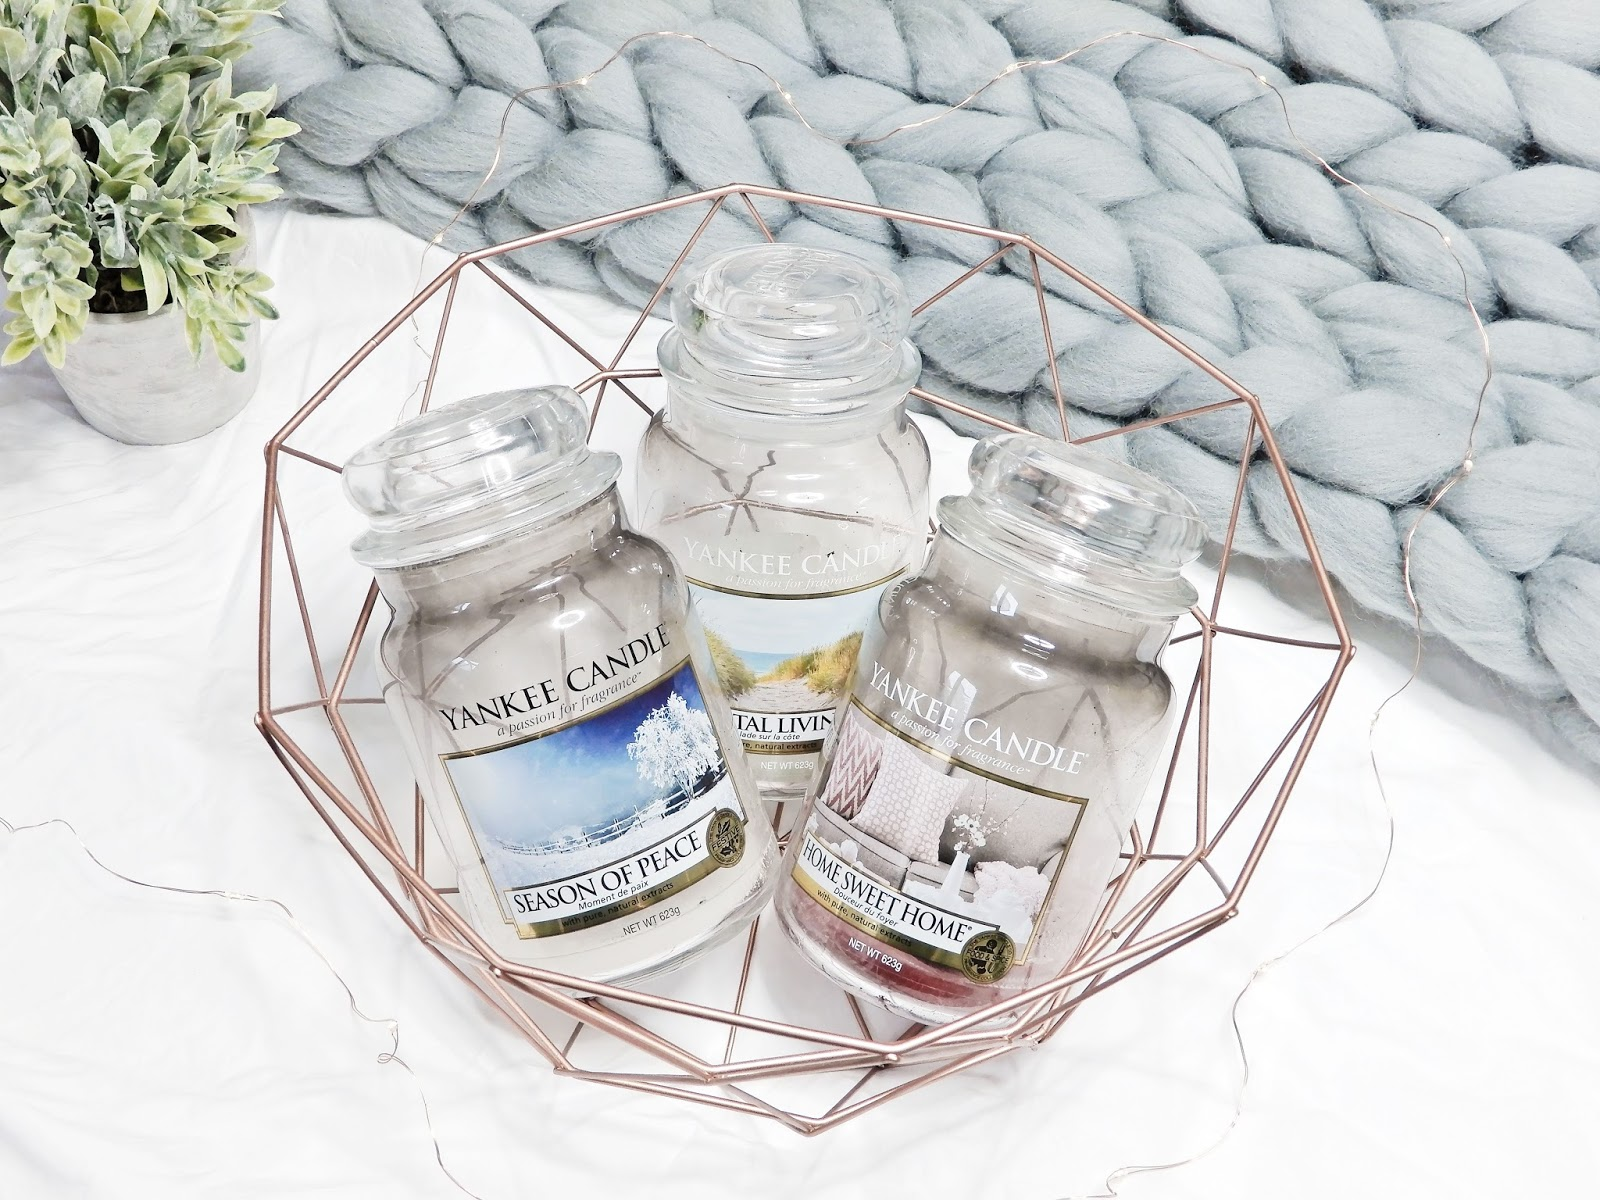 Świeca Yankee Candle Coastal Living, Świeca Yankee Candle Home Sweet Home, Świeca Yankee Candle Season of Peace,